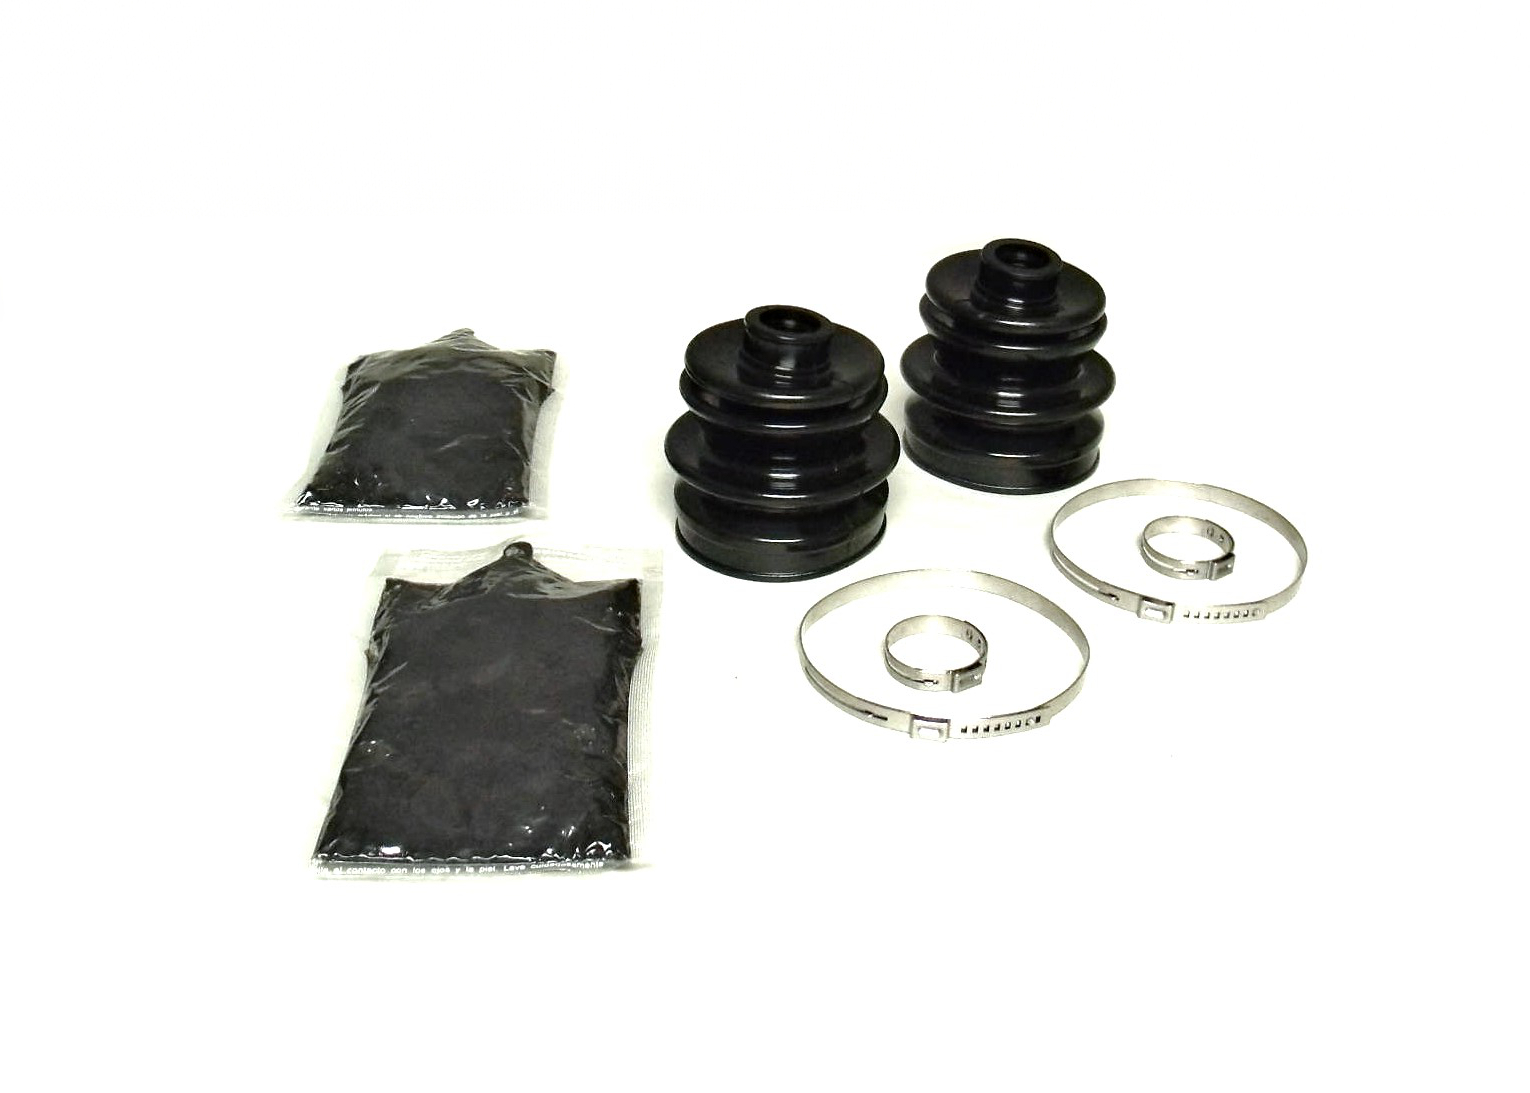 Set of Rear Axle Inner /& Outer CV Boot Kits 2009-2010 Arctic Cat 550 4x4 ATV